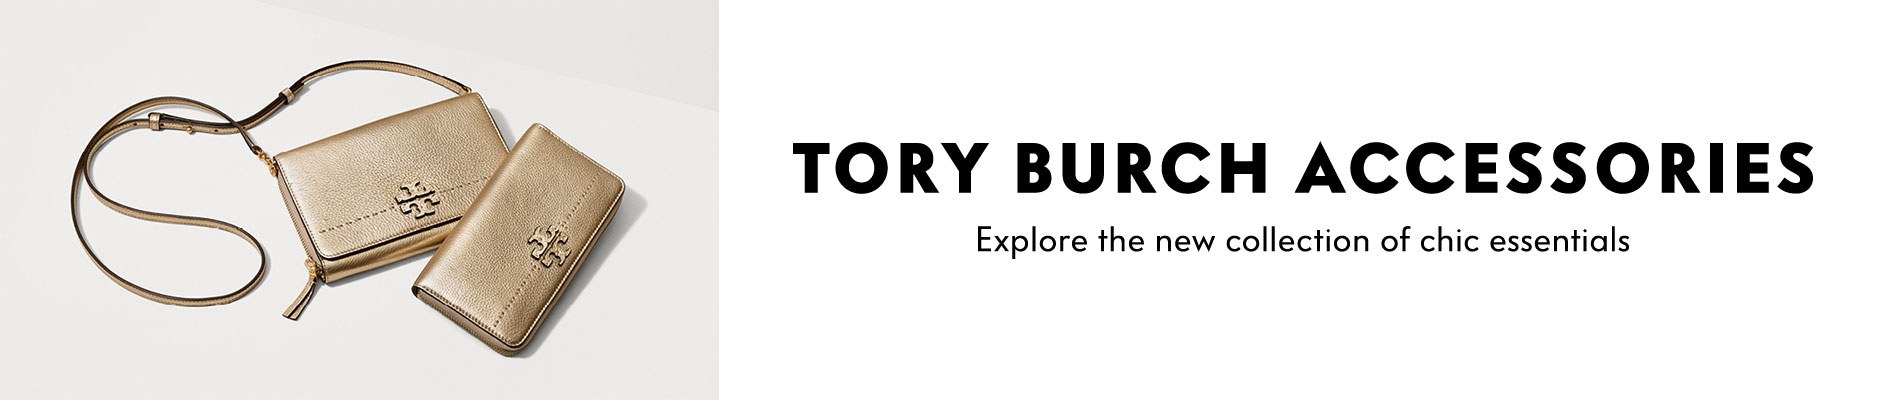 Tory Burch Accessories - explore the new collection of chic essentials